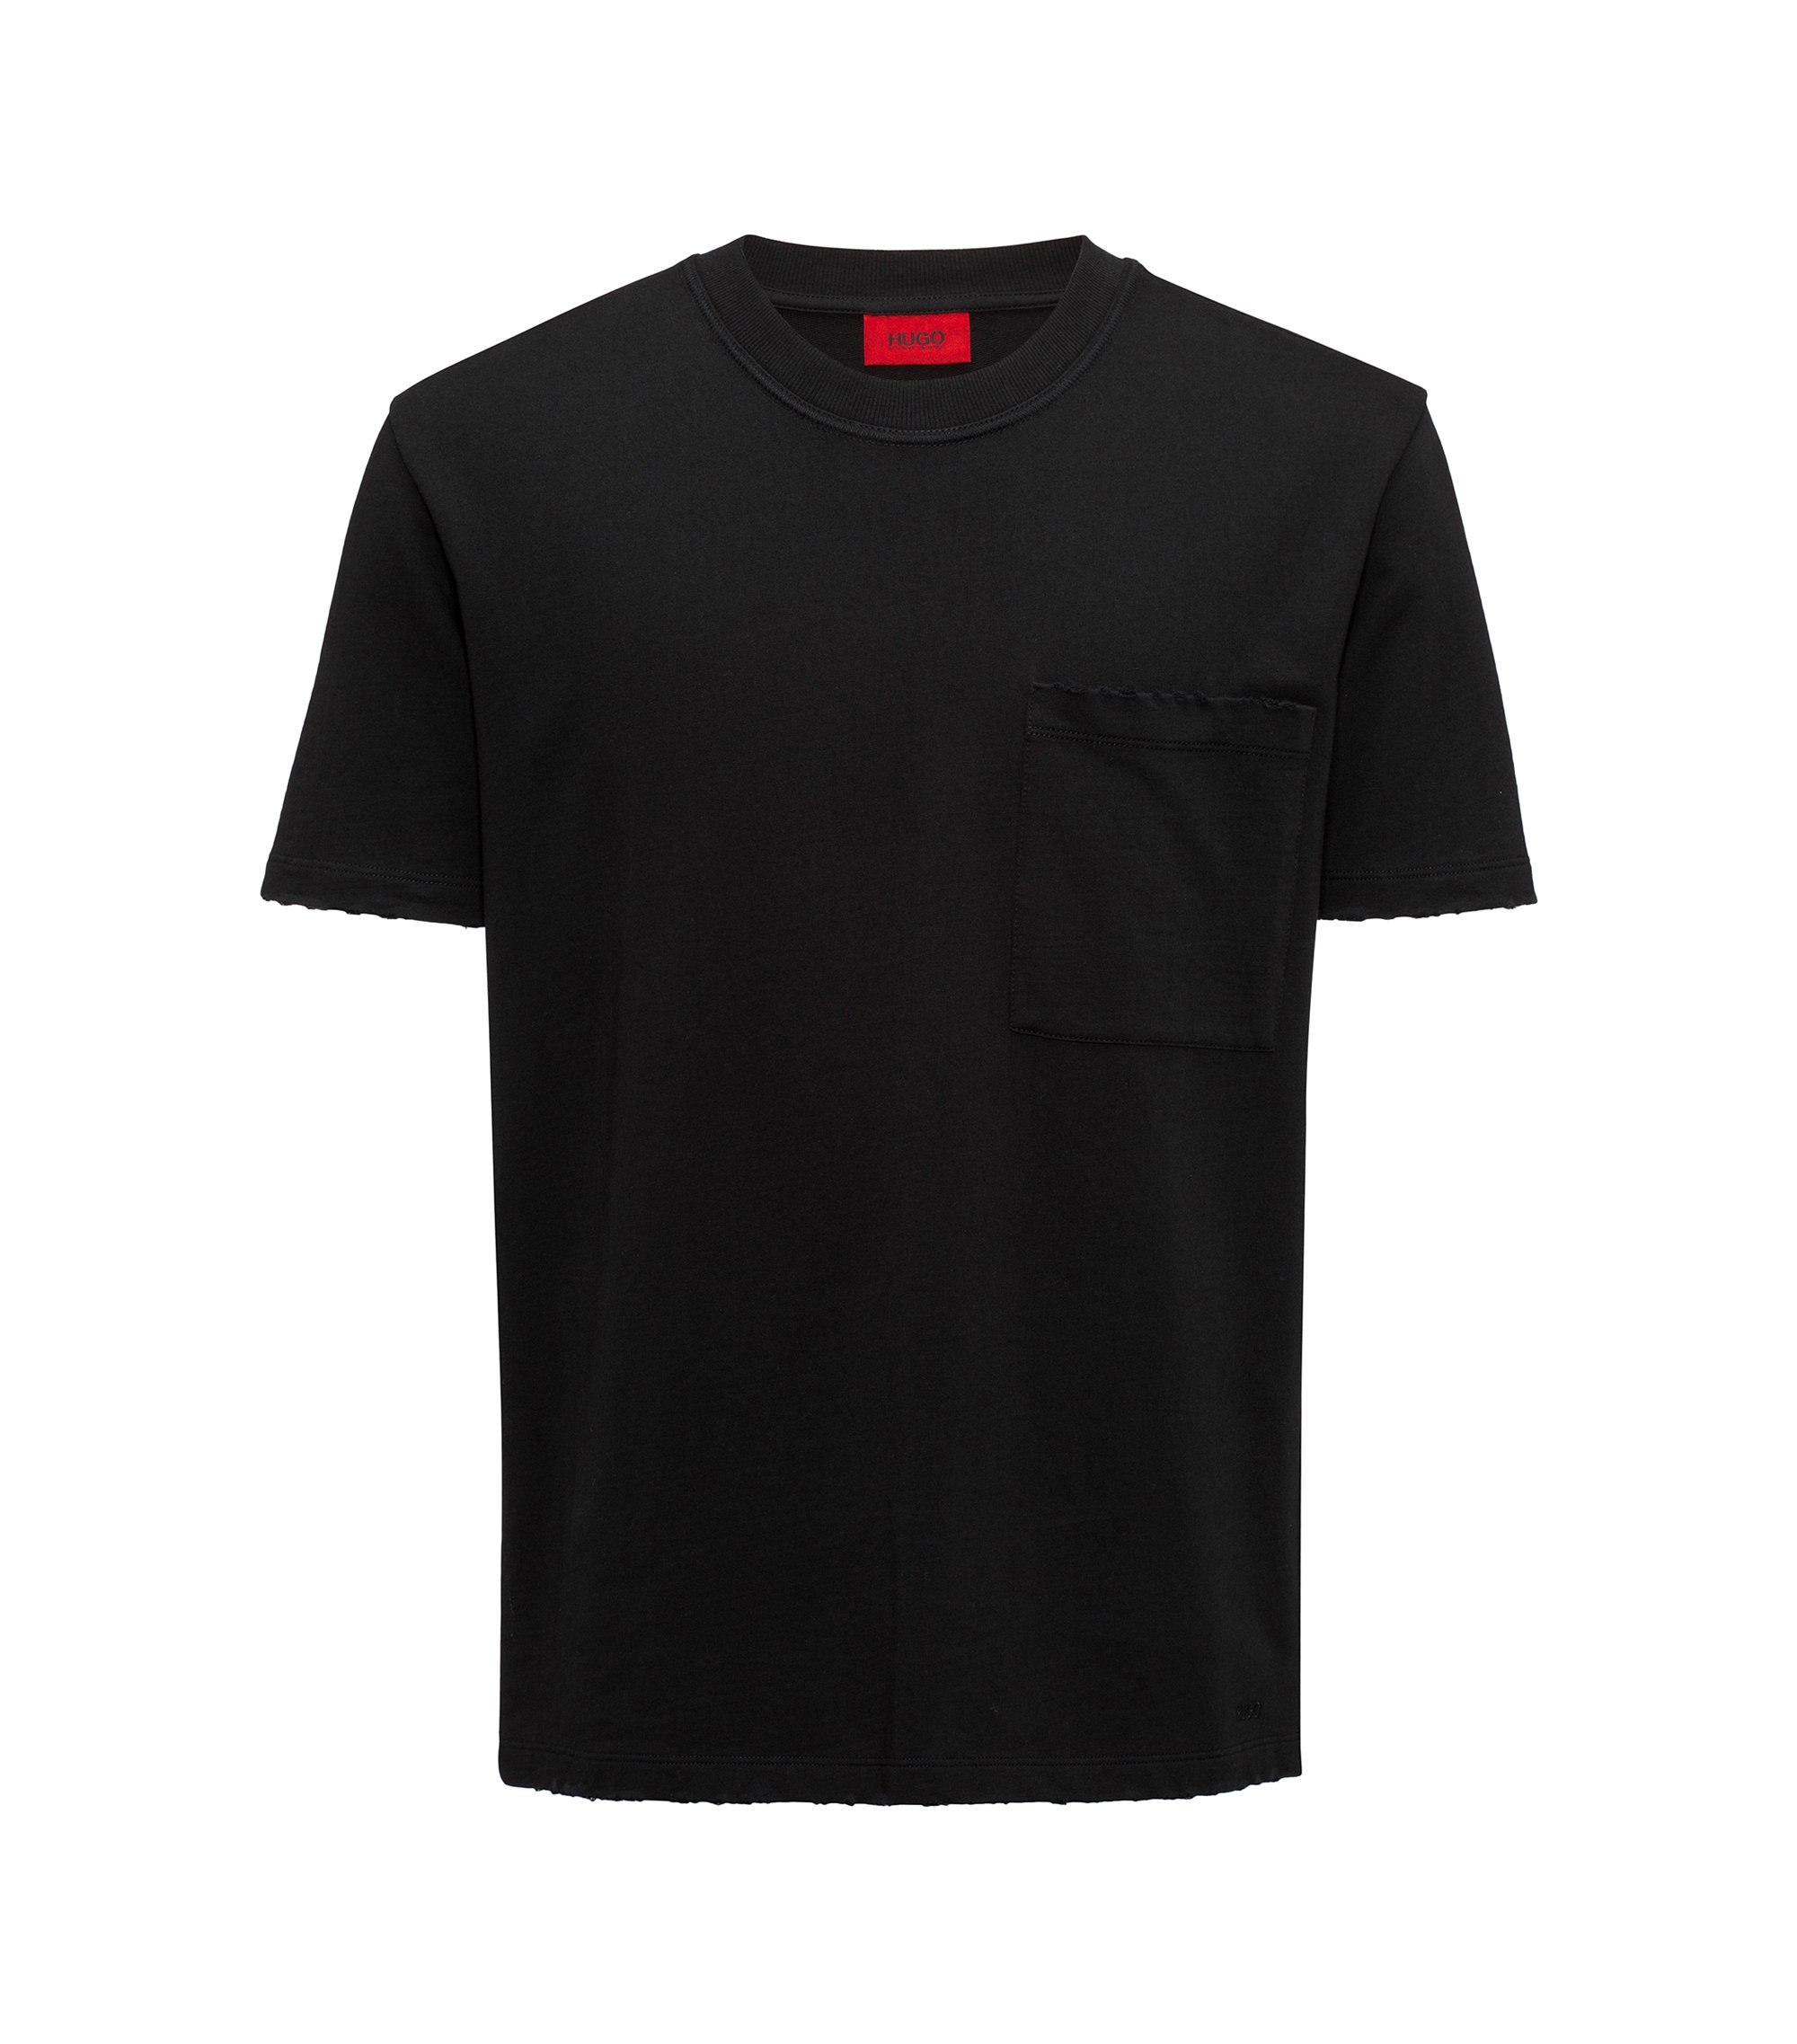 Destroyed Cotton T-Shirt | Drizz, Black